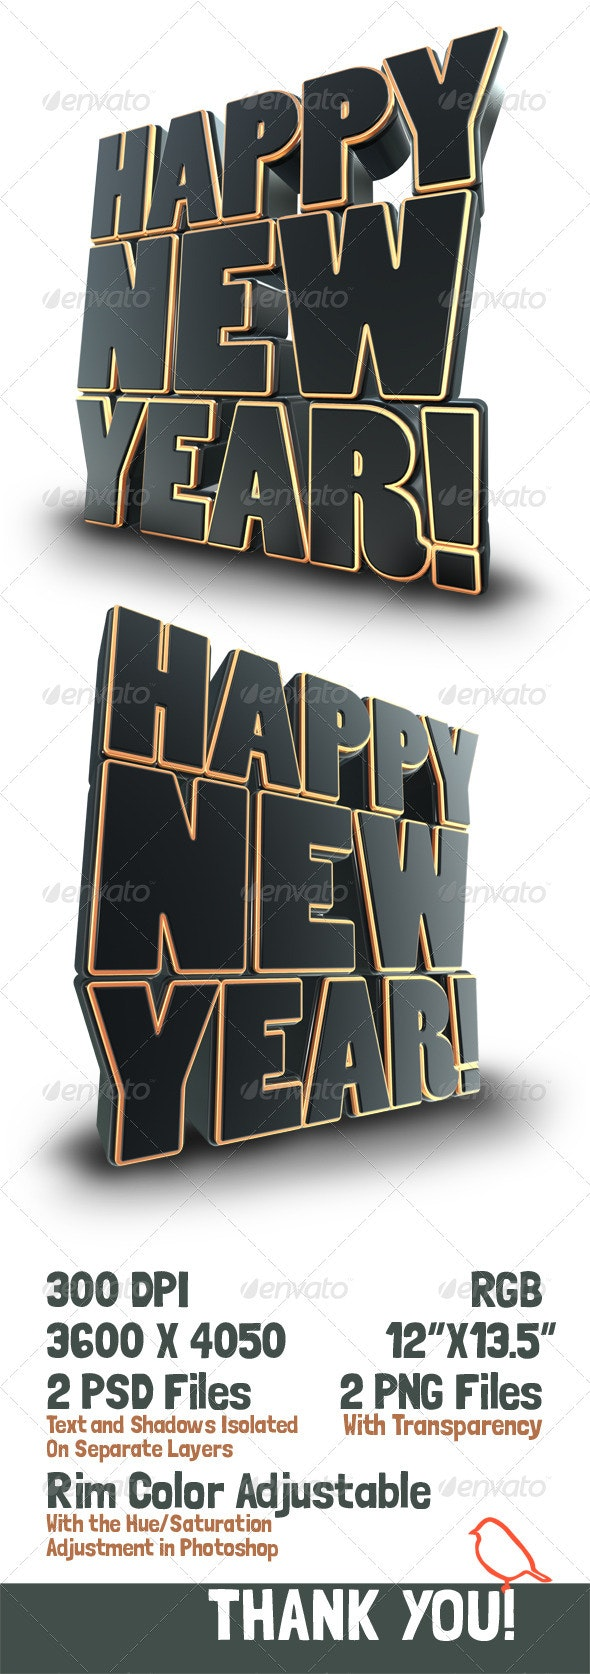 Happy New Year 3D Text Render - Text 3D Renders